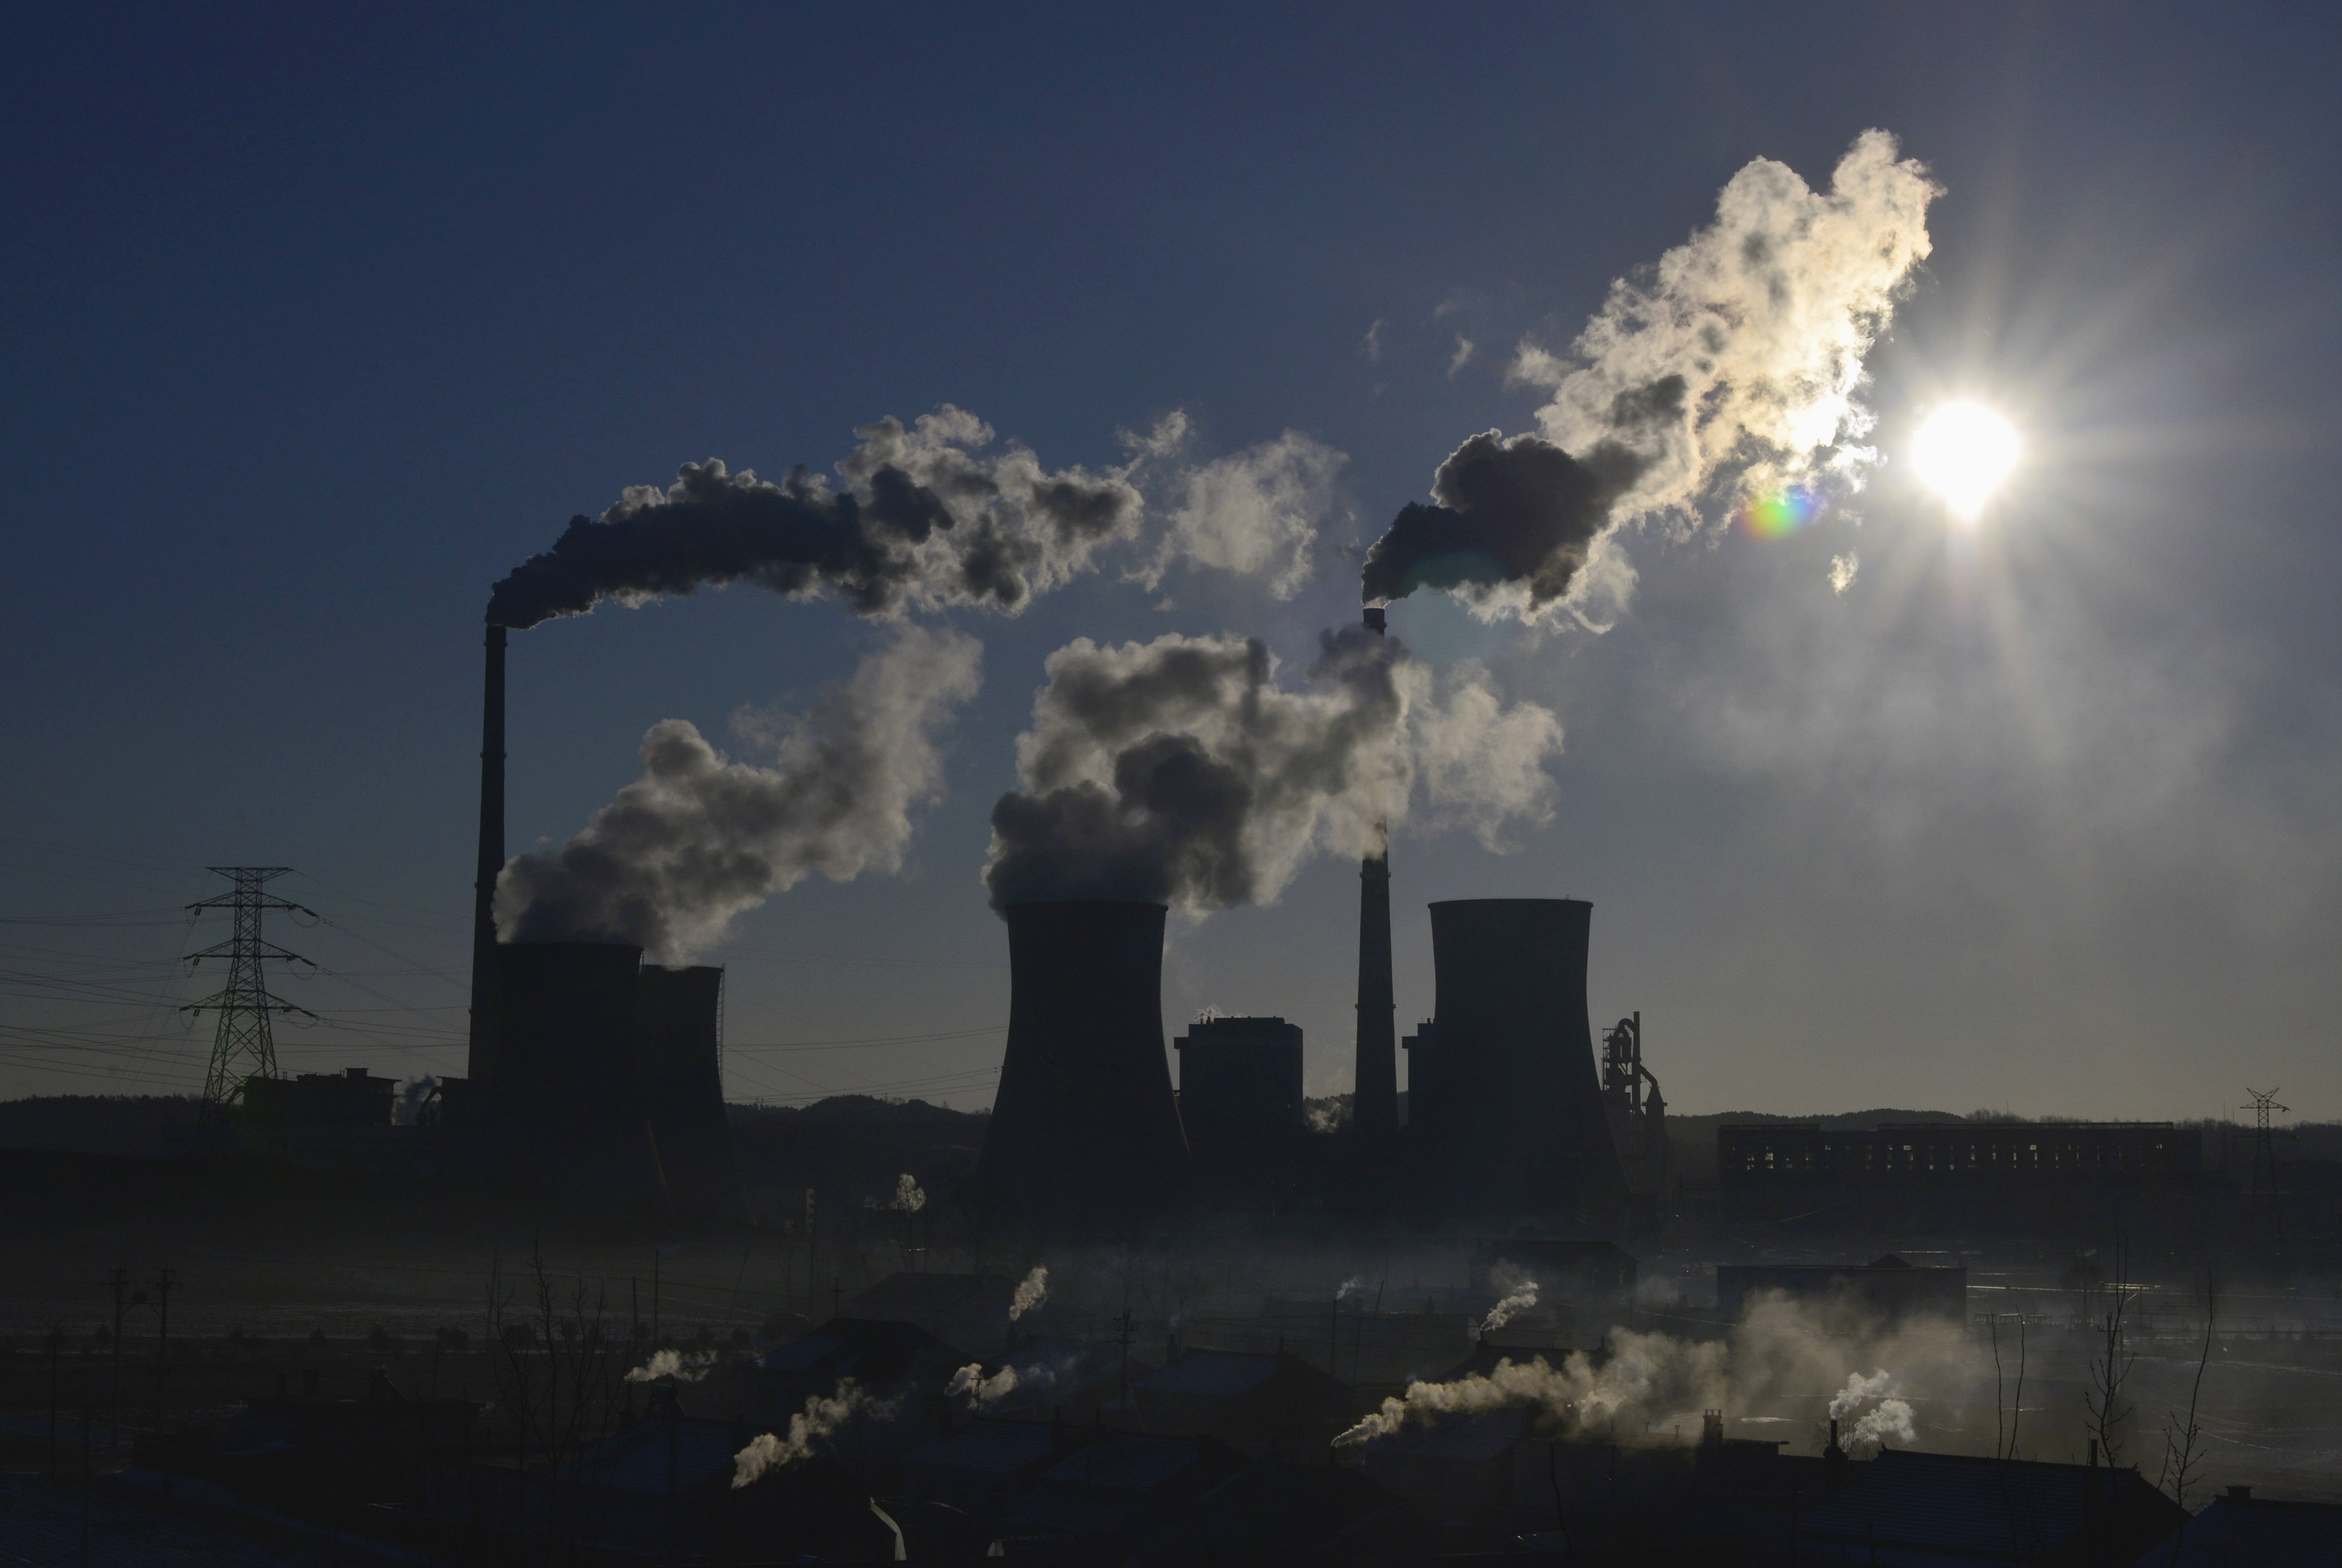 Smoke rises from chimneys and cooling towers of a thermal power